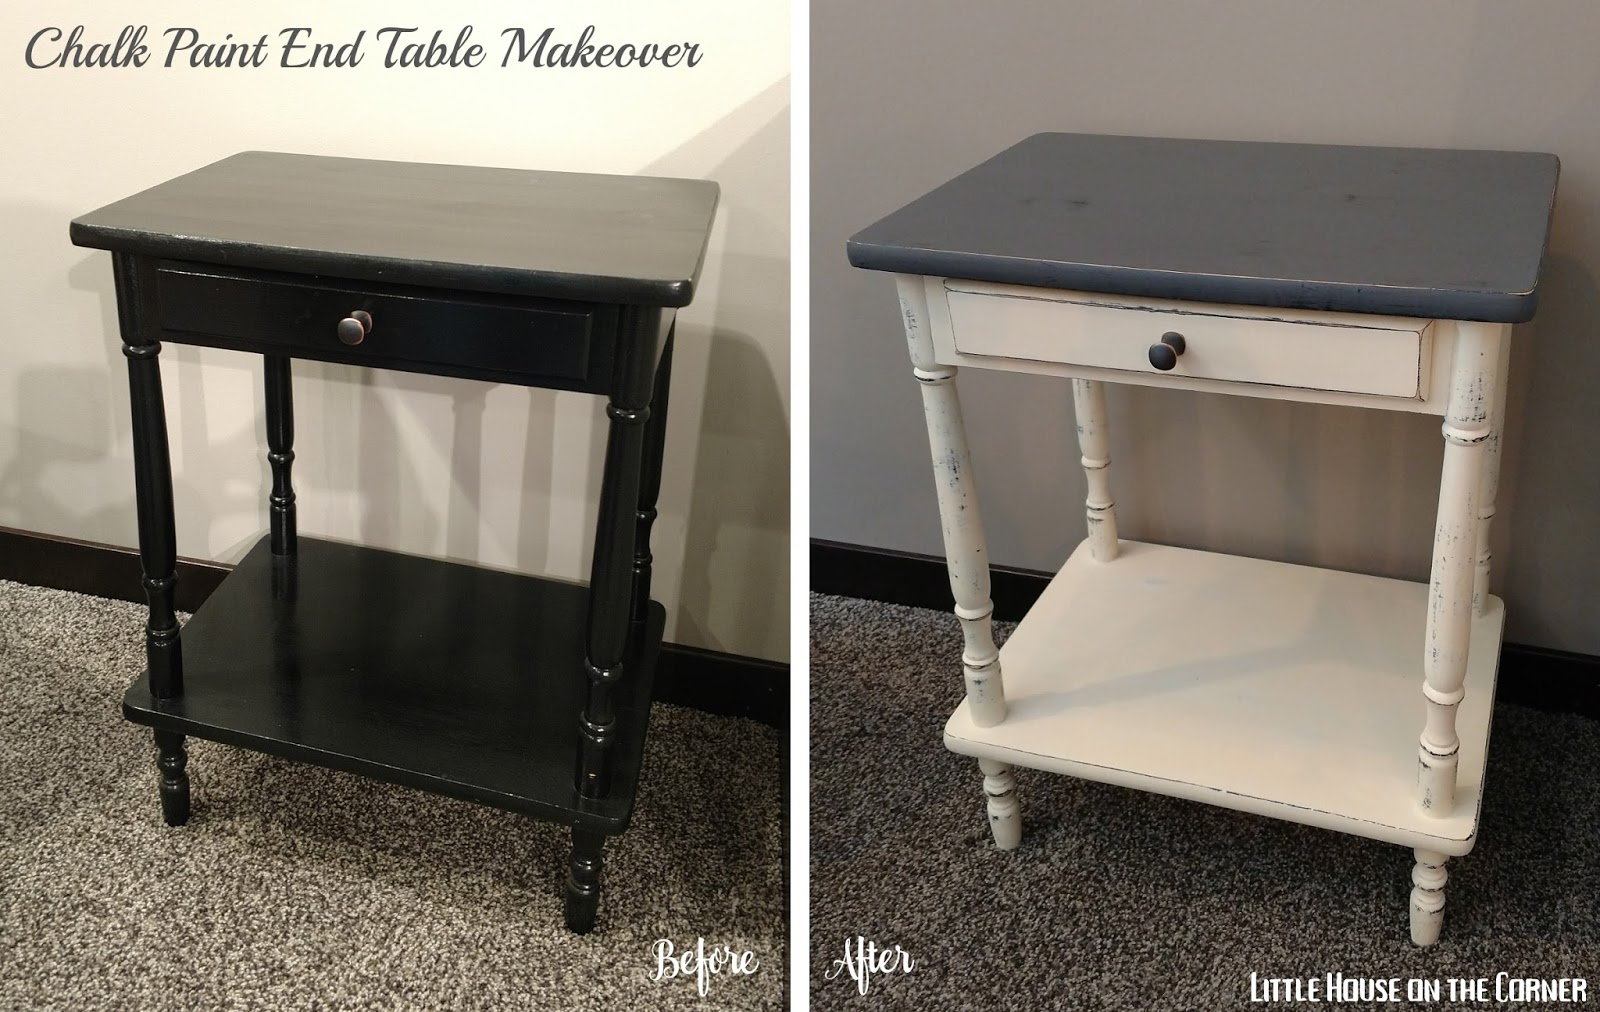 So The Subject Of This Latest Transformation Is A Little End Table Weu0027ve  Had Forever (Iu0027m Pretty Sure It Was A Hand Me Down From My Sister).